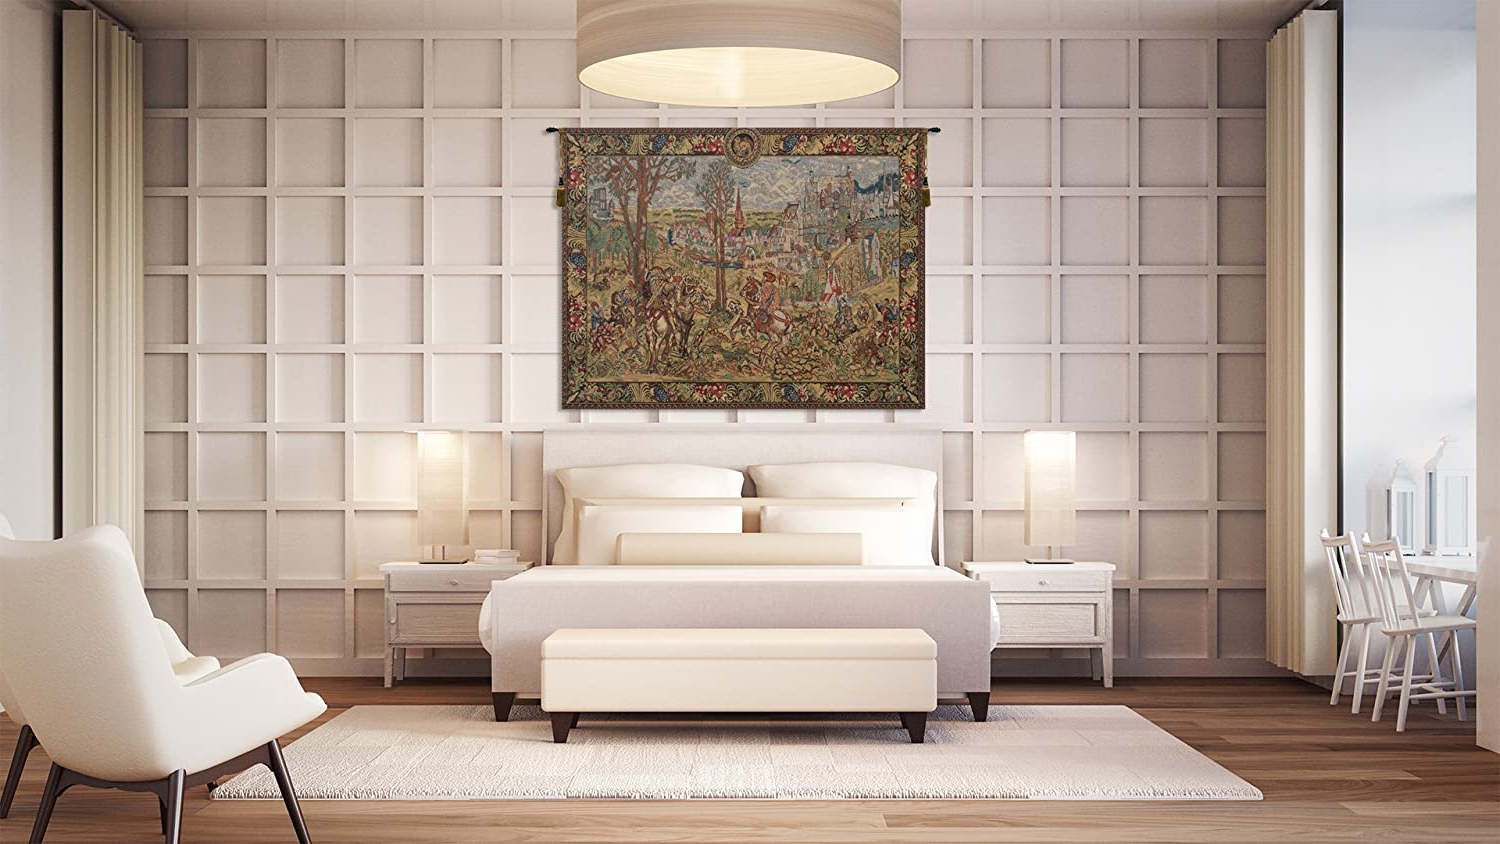 Blended Fabric Vieux Brussels Wall Hangings Throughout Current Amazon: Charlotte Home Furnishings Inc (View 10 of 20)